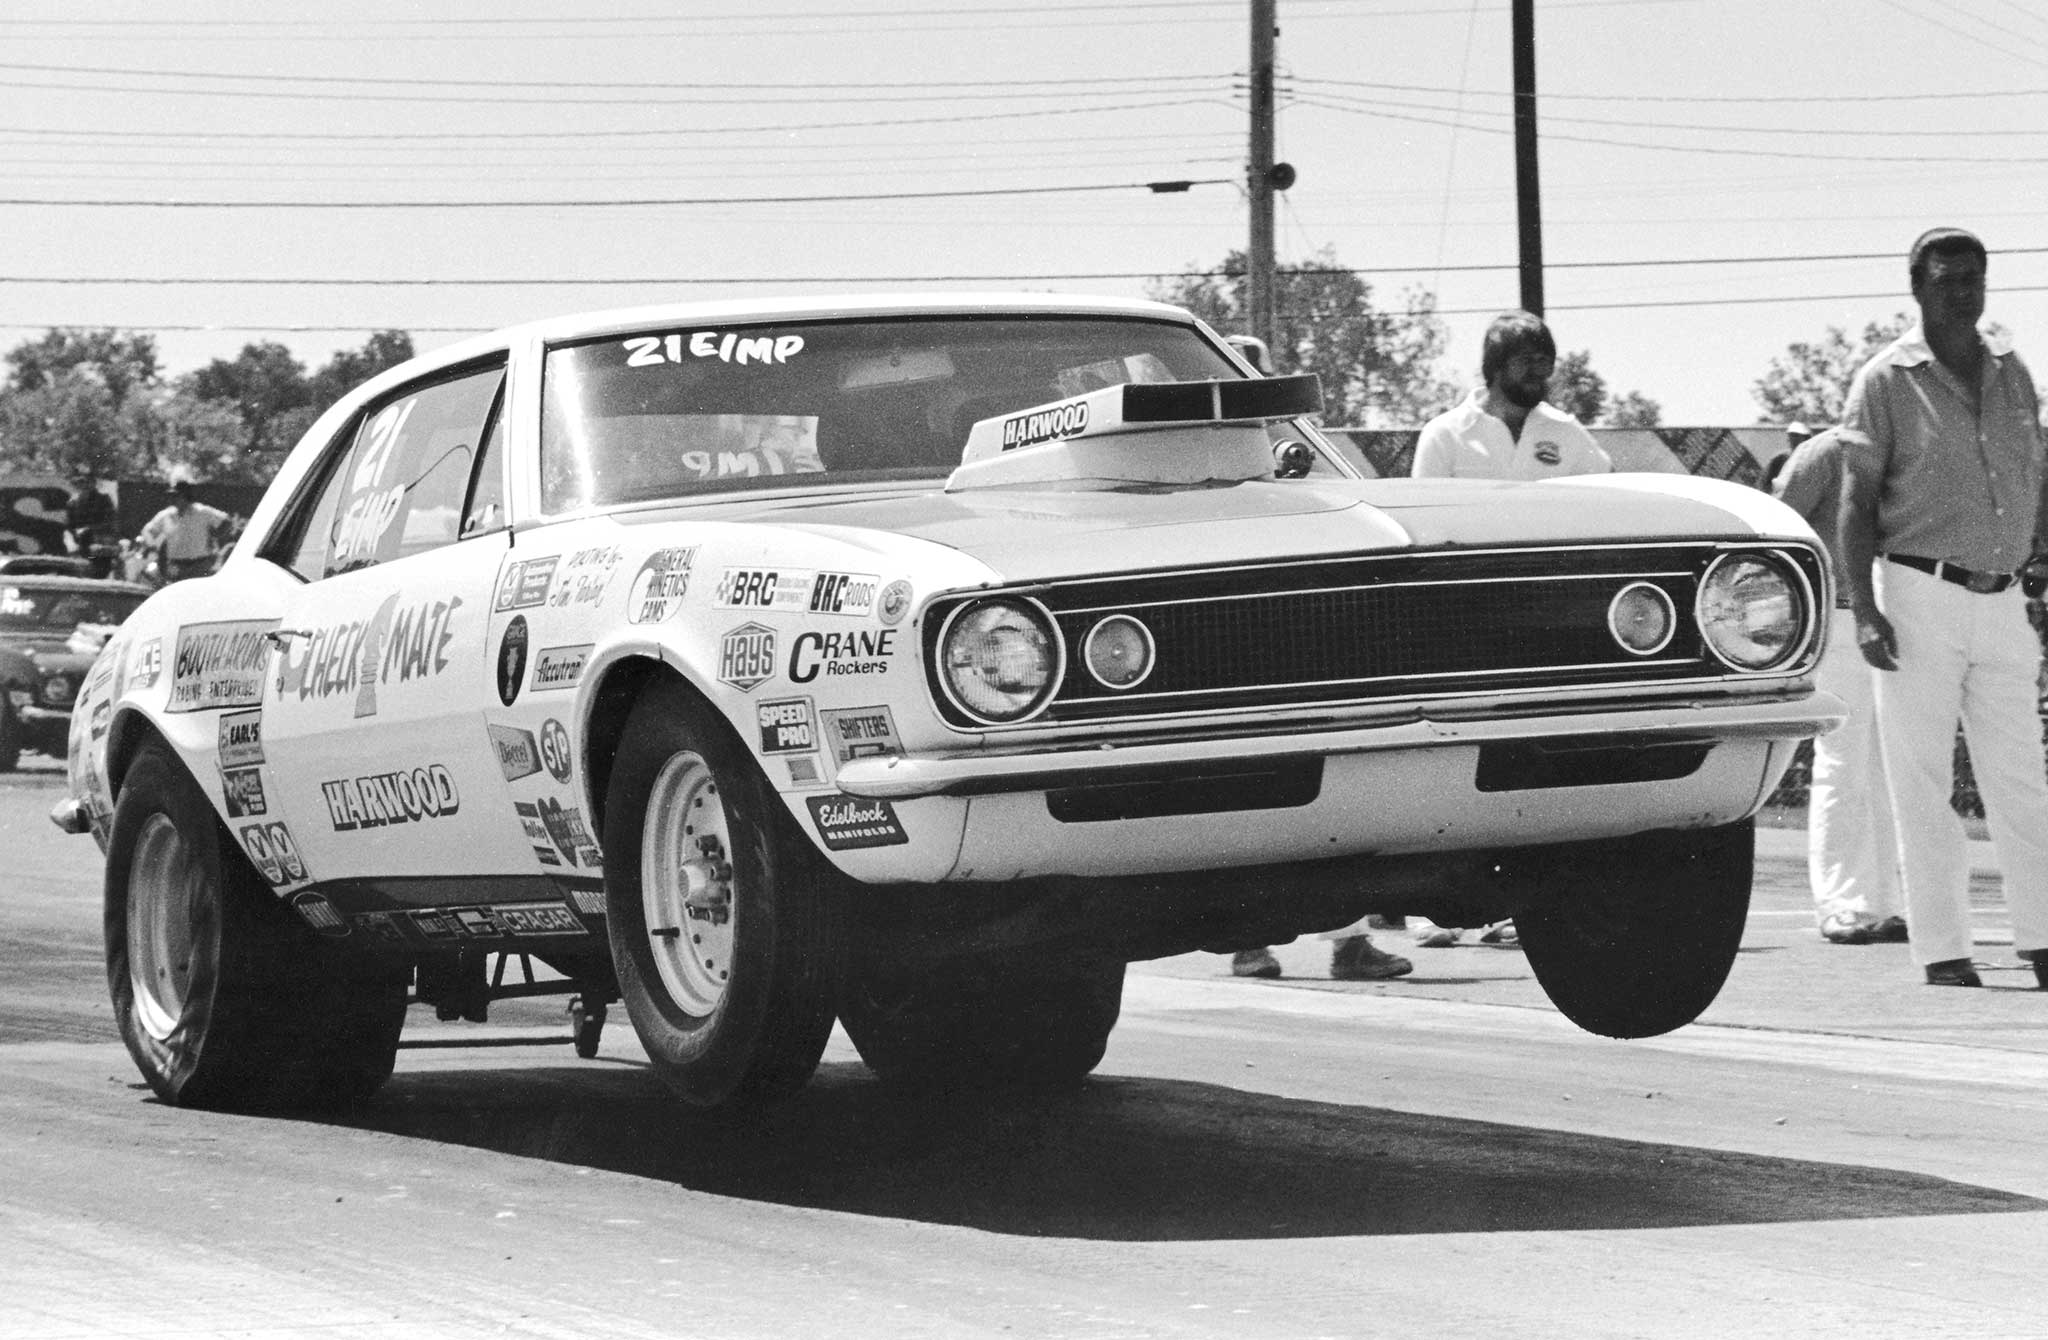 Paul Mercure's E/MP 1967 Camaro and teammate Paul Keener's similar D/MP featured interchangeable, small-block Chevy power from engine wizard Dick Arons. Both Check-Mate cars were multiple class winners and constant record-holders in the early and mid-1970s.